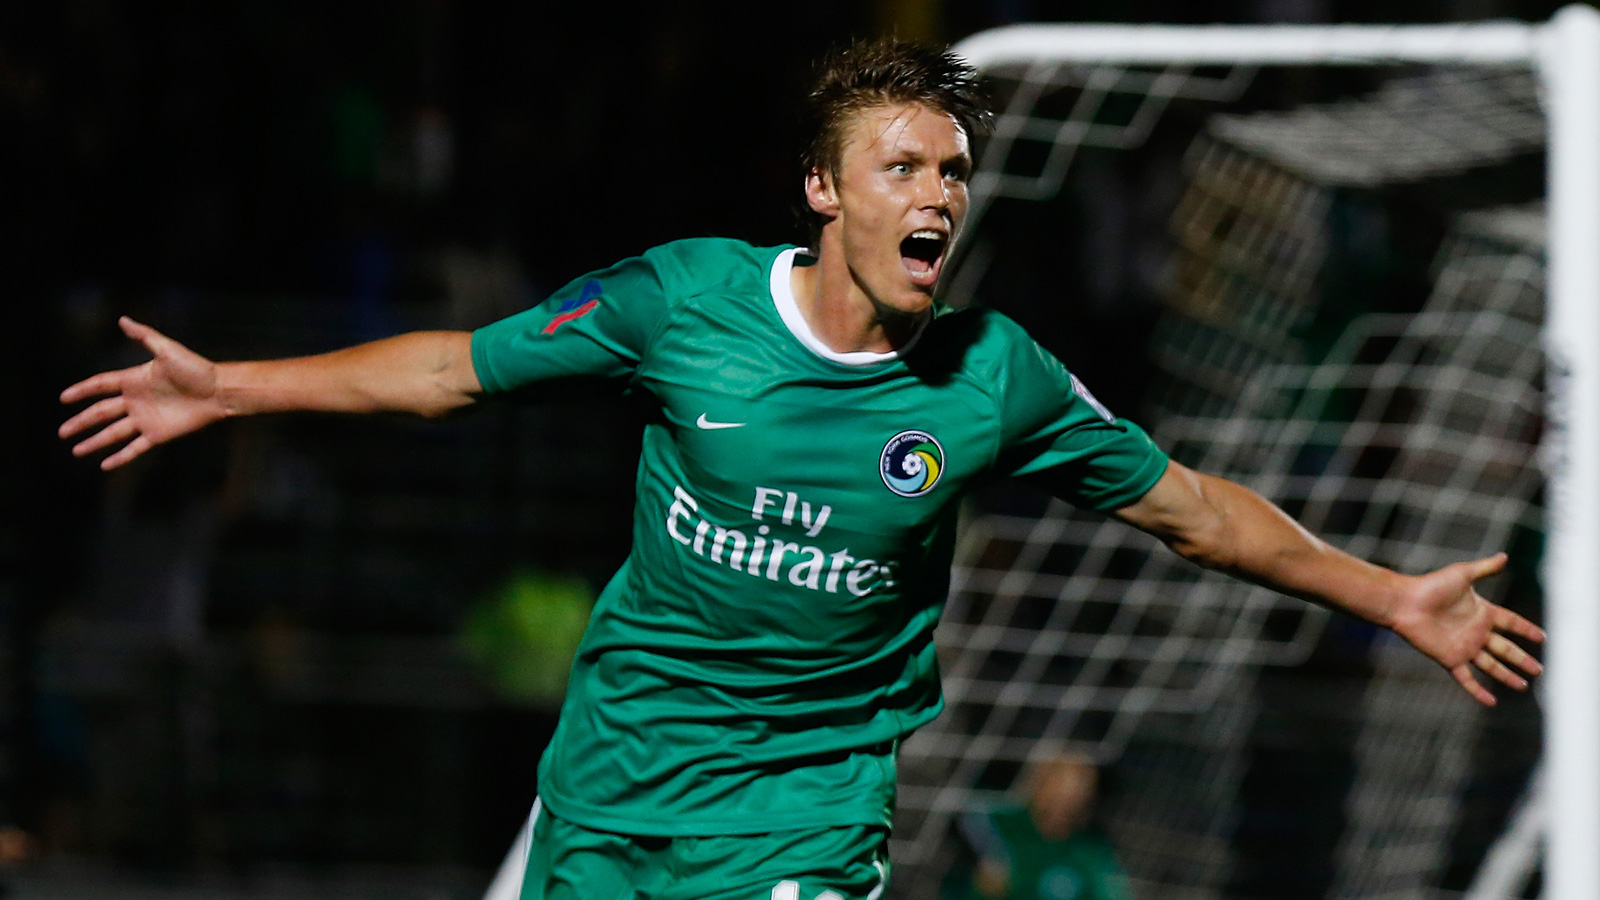 Mads Stokkelien scored twice in leading the New York Cosmos over the New York Red Bulls 3-0 in the 2014 U.S. Open Cup fourth round.